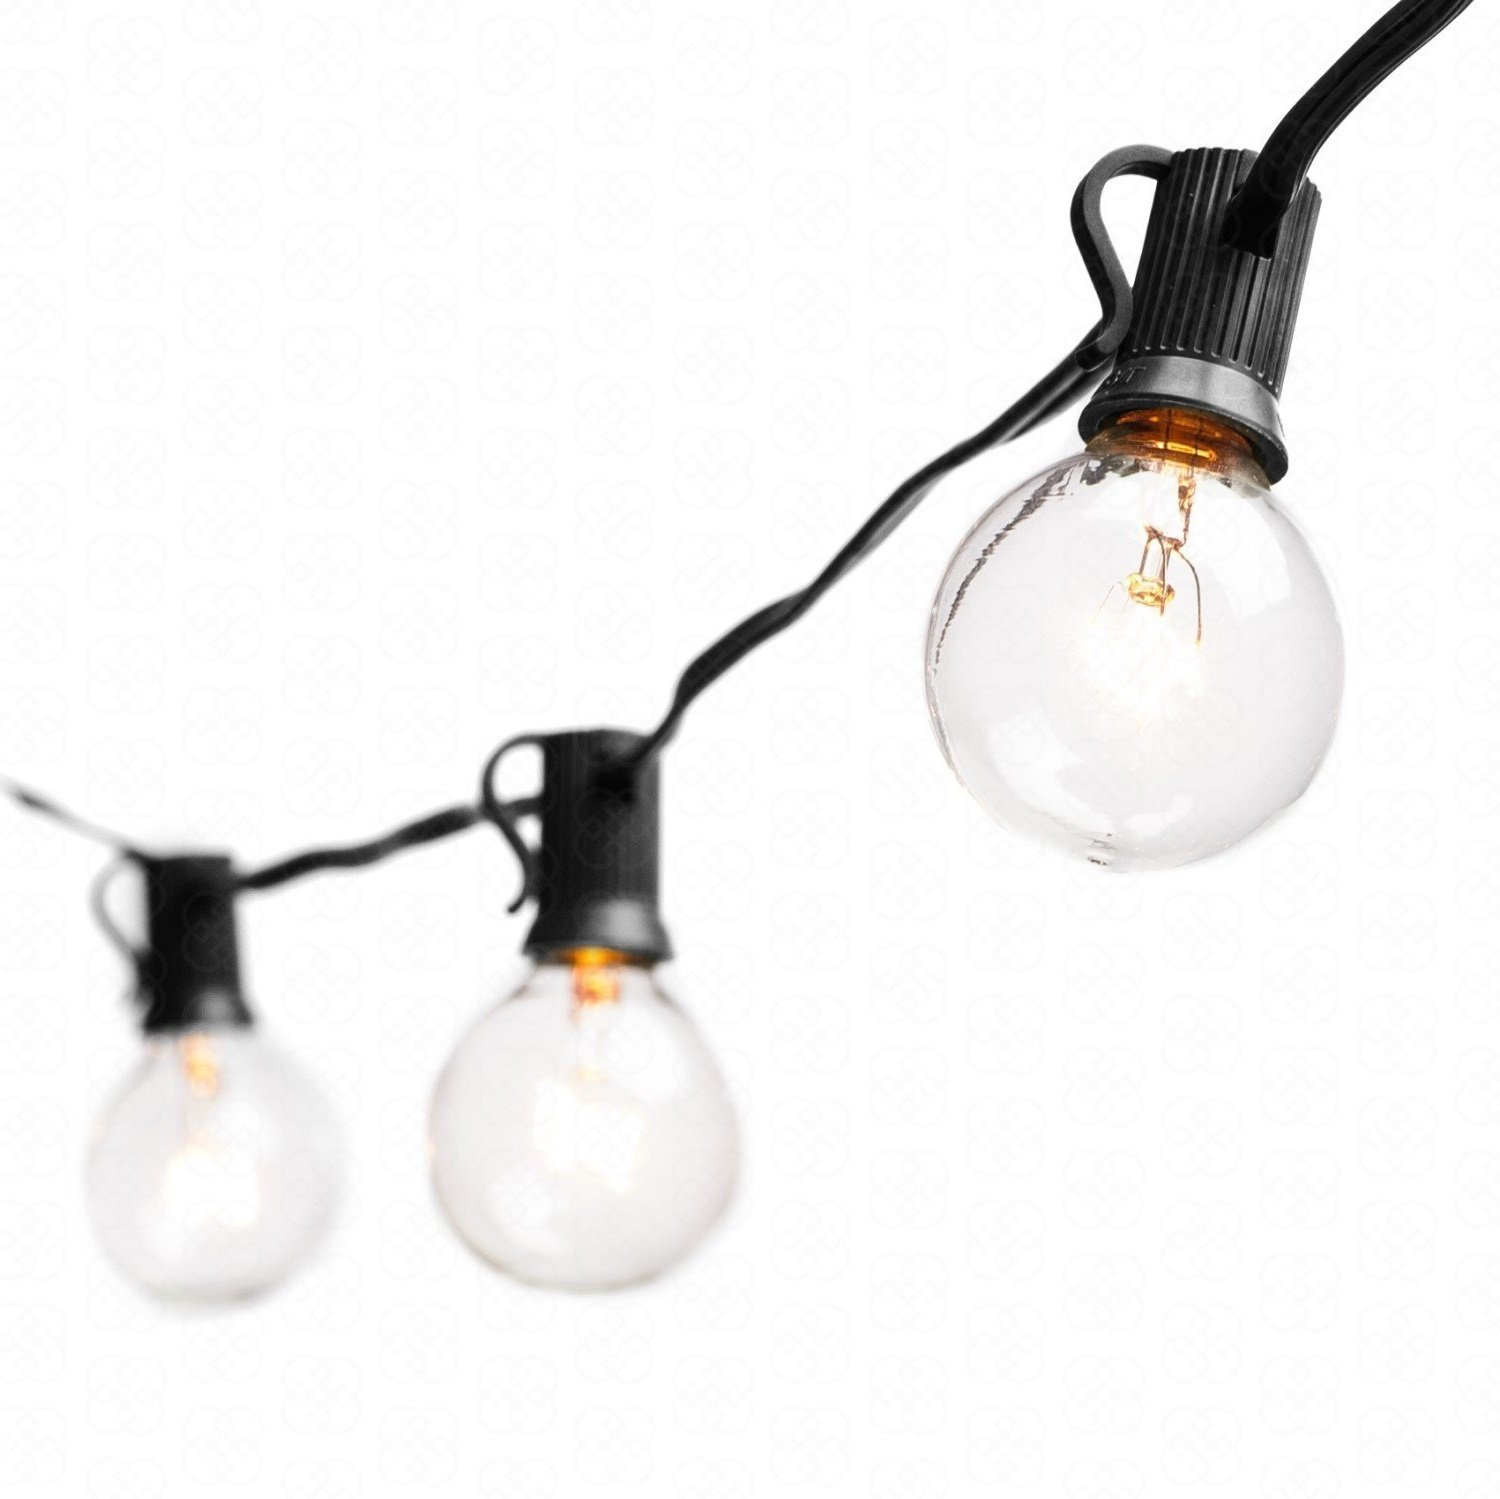 20 ft. 30-Light Globe String Light | Wayfair